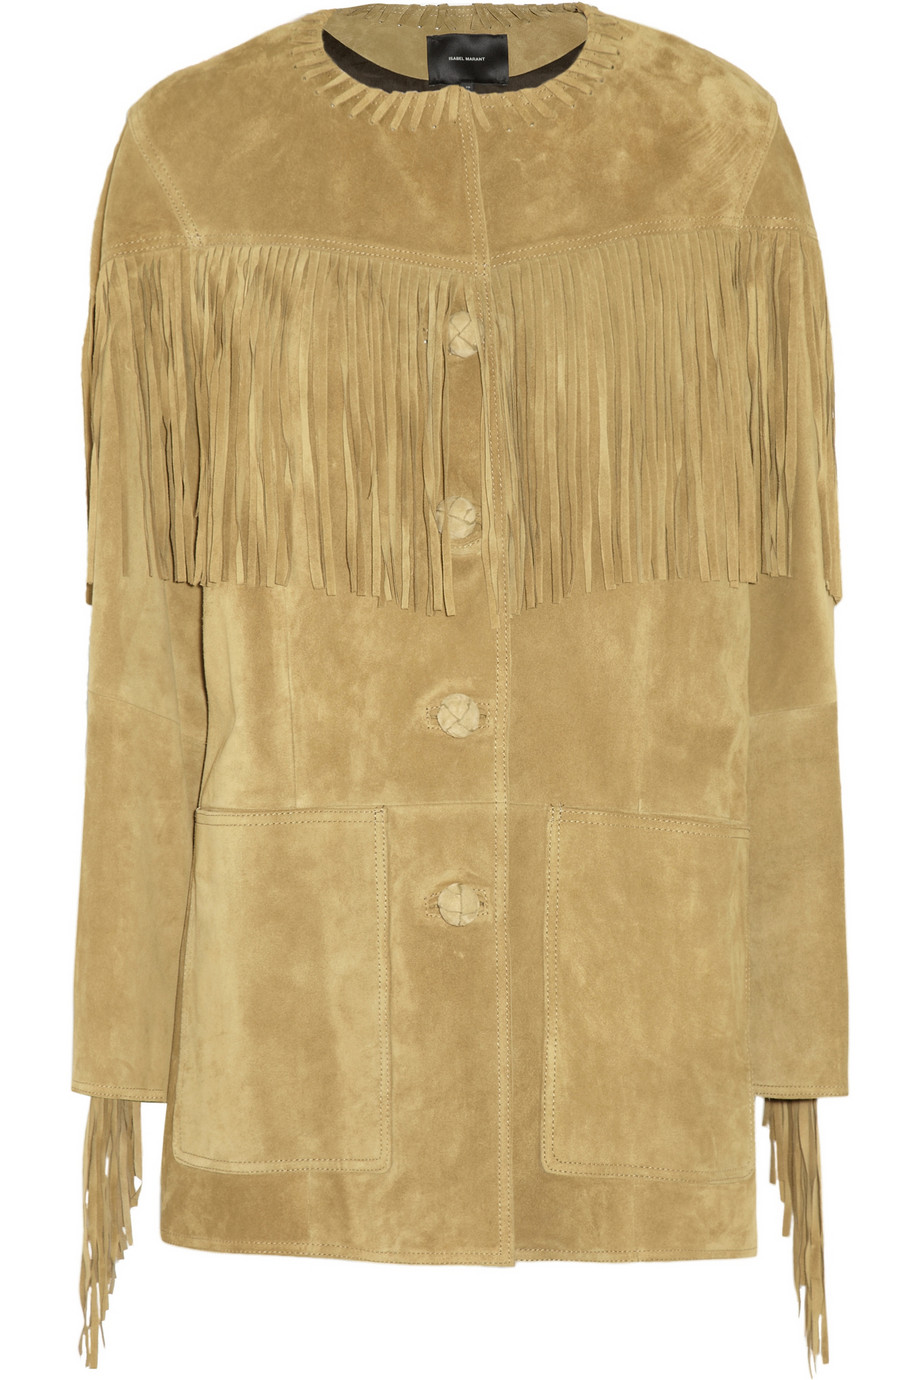 Isabel Marant Miel fringed suede jacket – 60% at THE OUTNET.COM